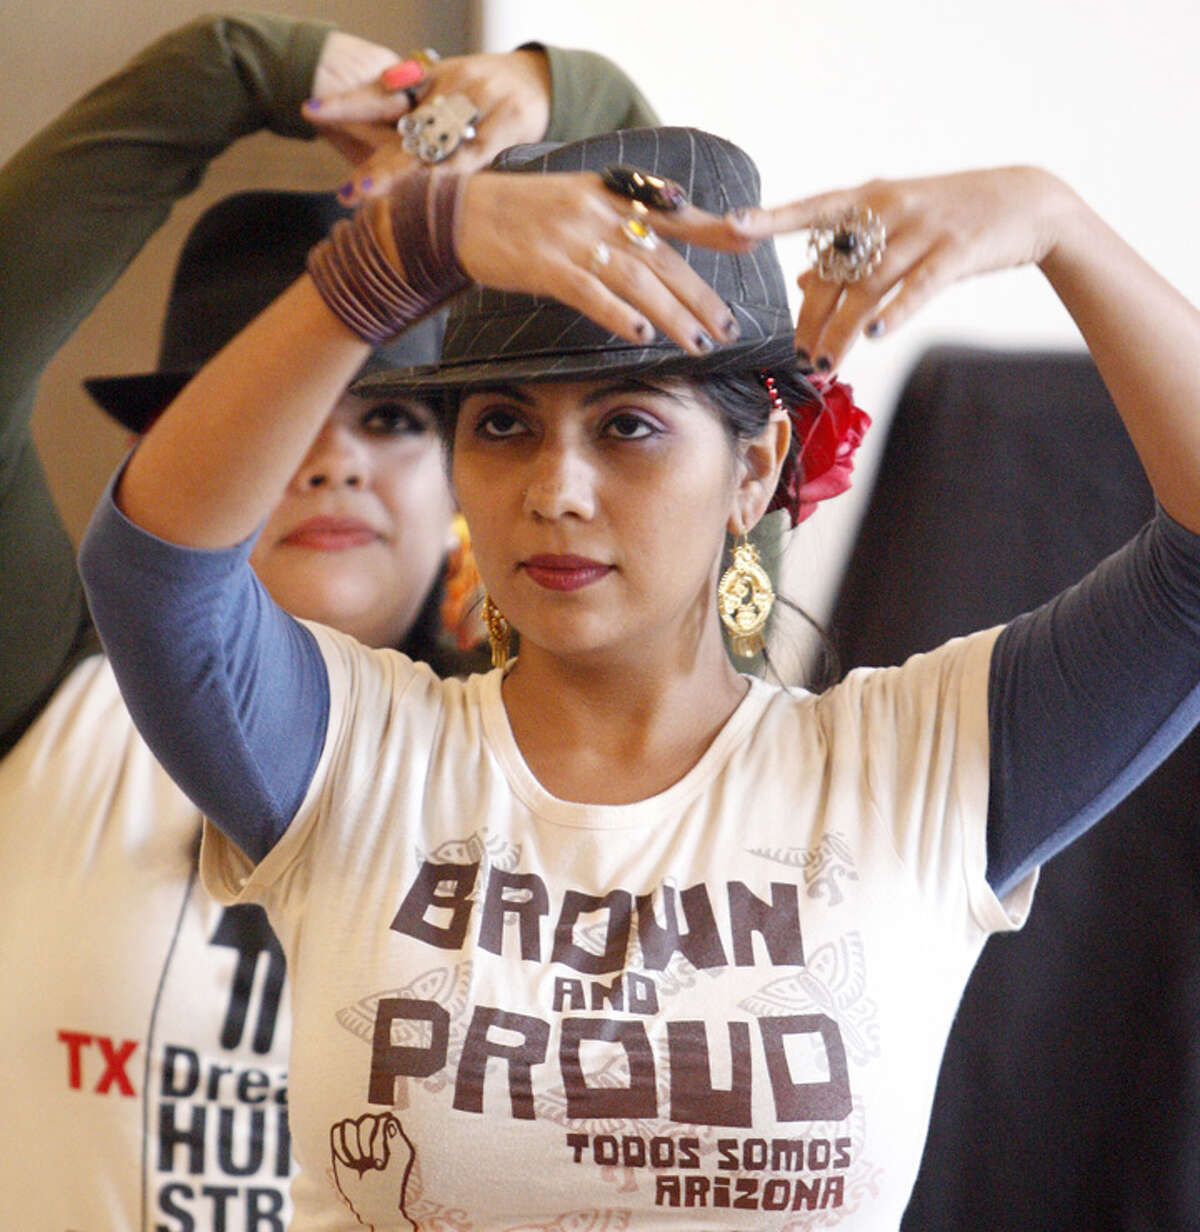 Marisa Gonzalez (front) and Giomara Bazaldua perform an ethnic dance in support of the DREAM Act.